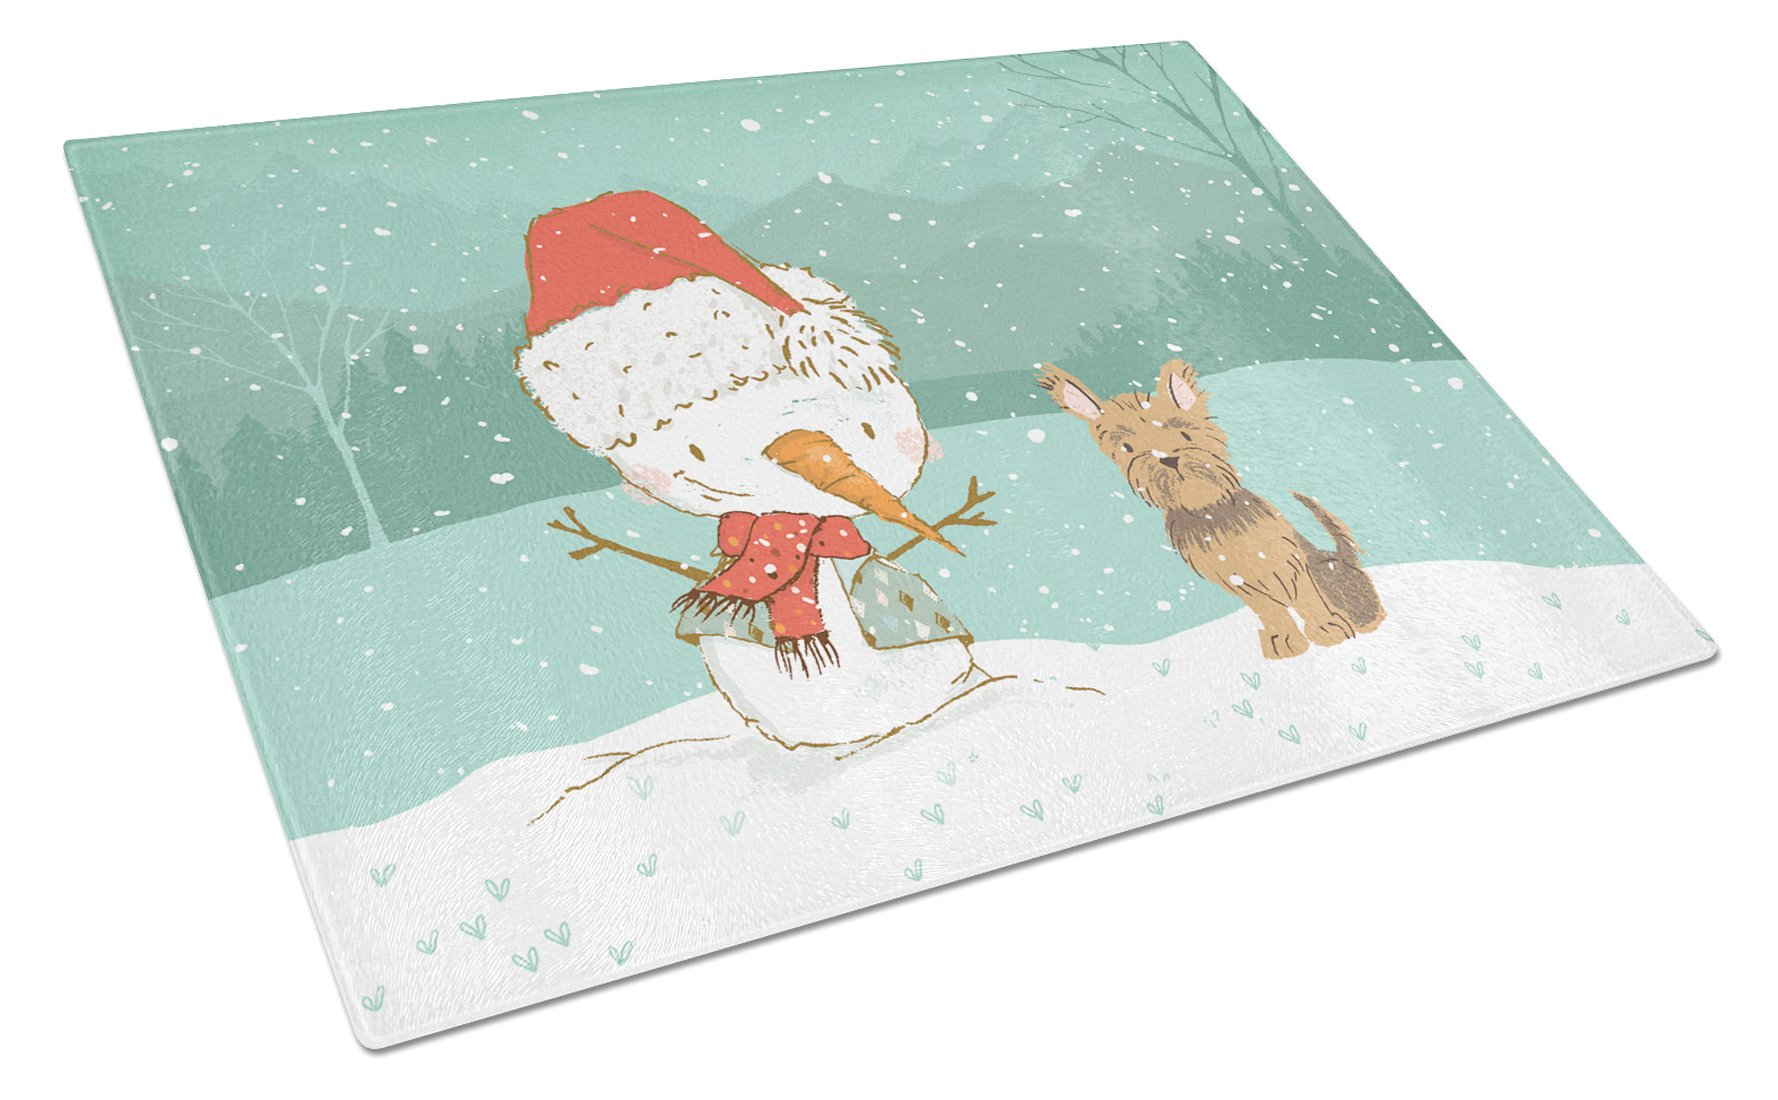 Yorkie Cropped Ears Snowman Christmas Glass Cutting Board Large CK2098LCB by Caroline's Treasures